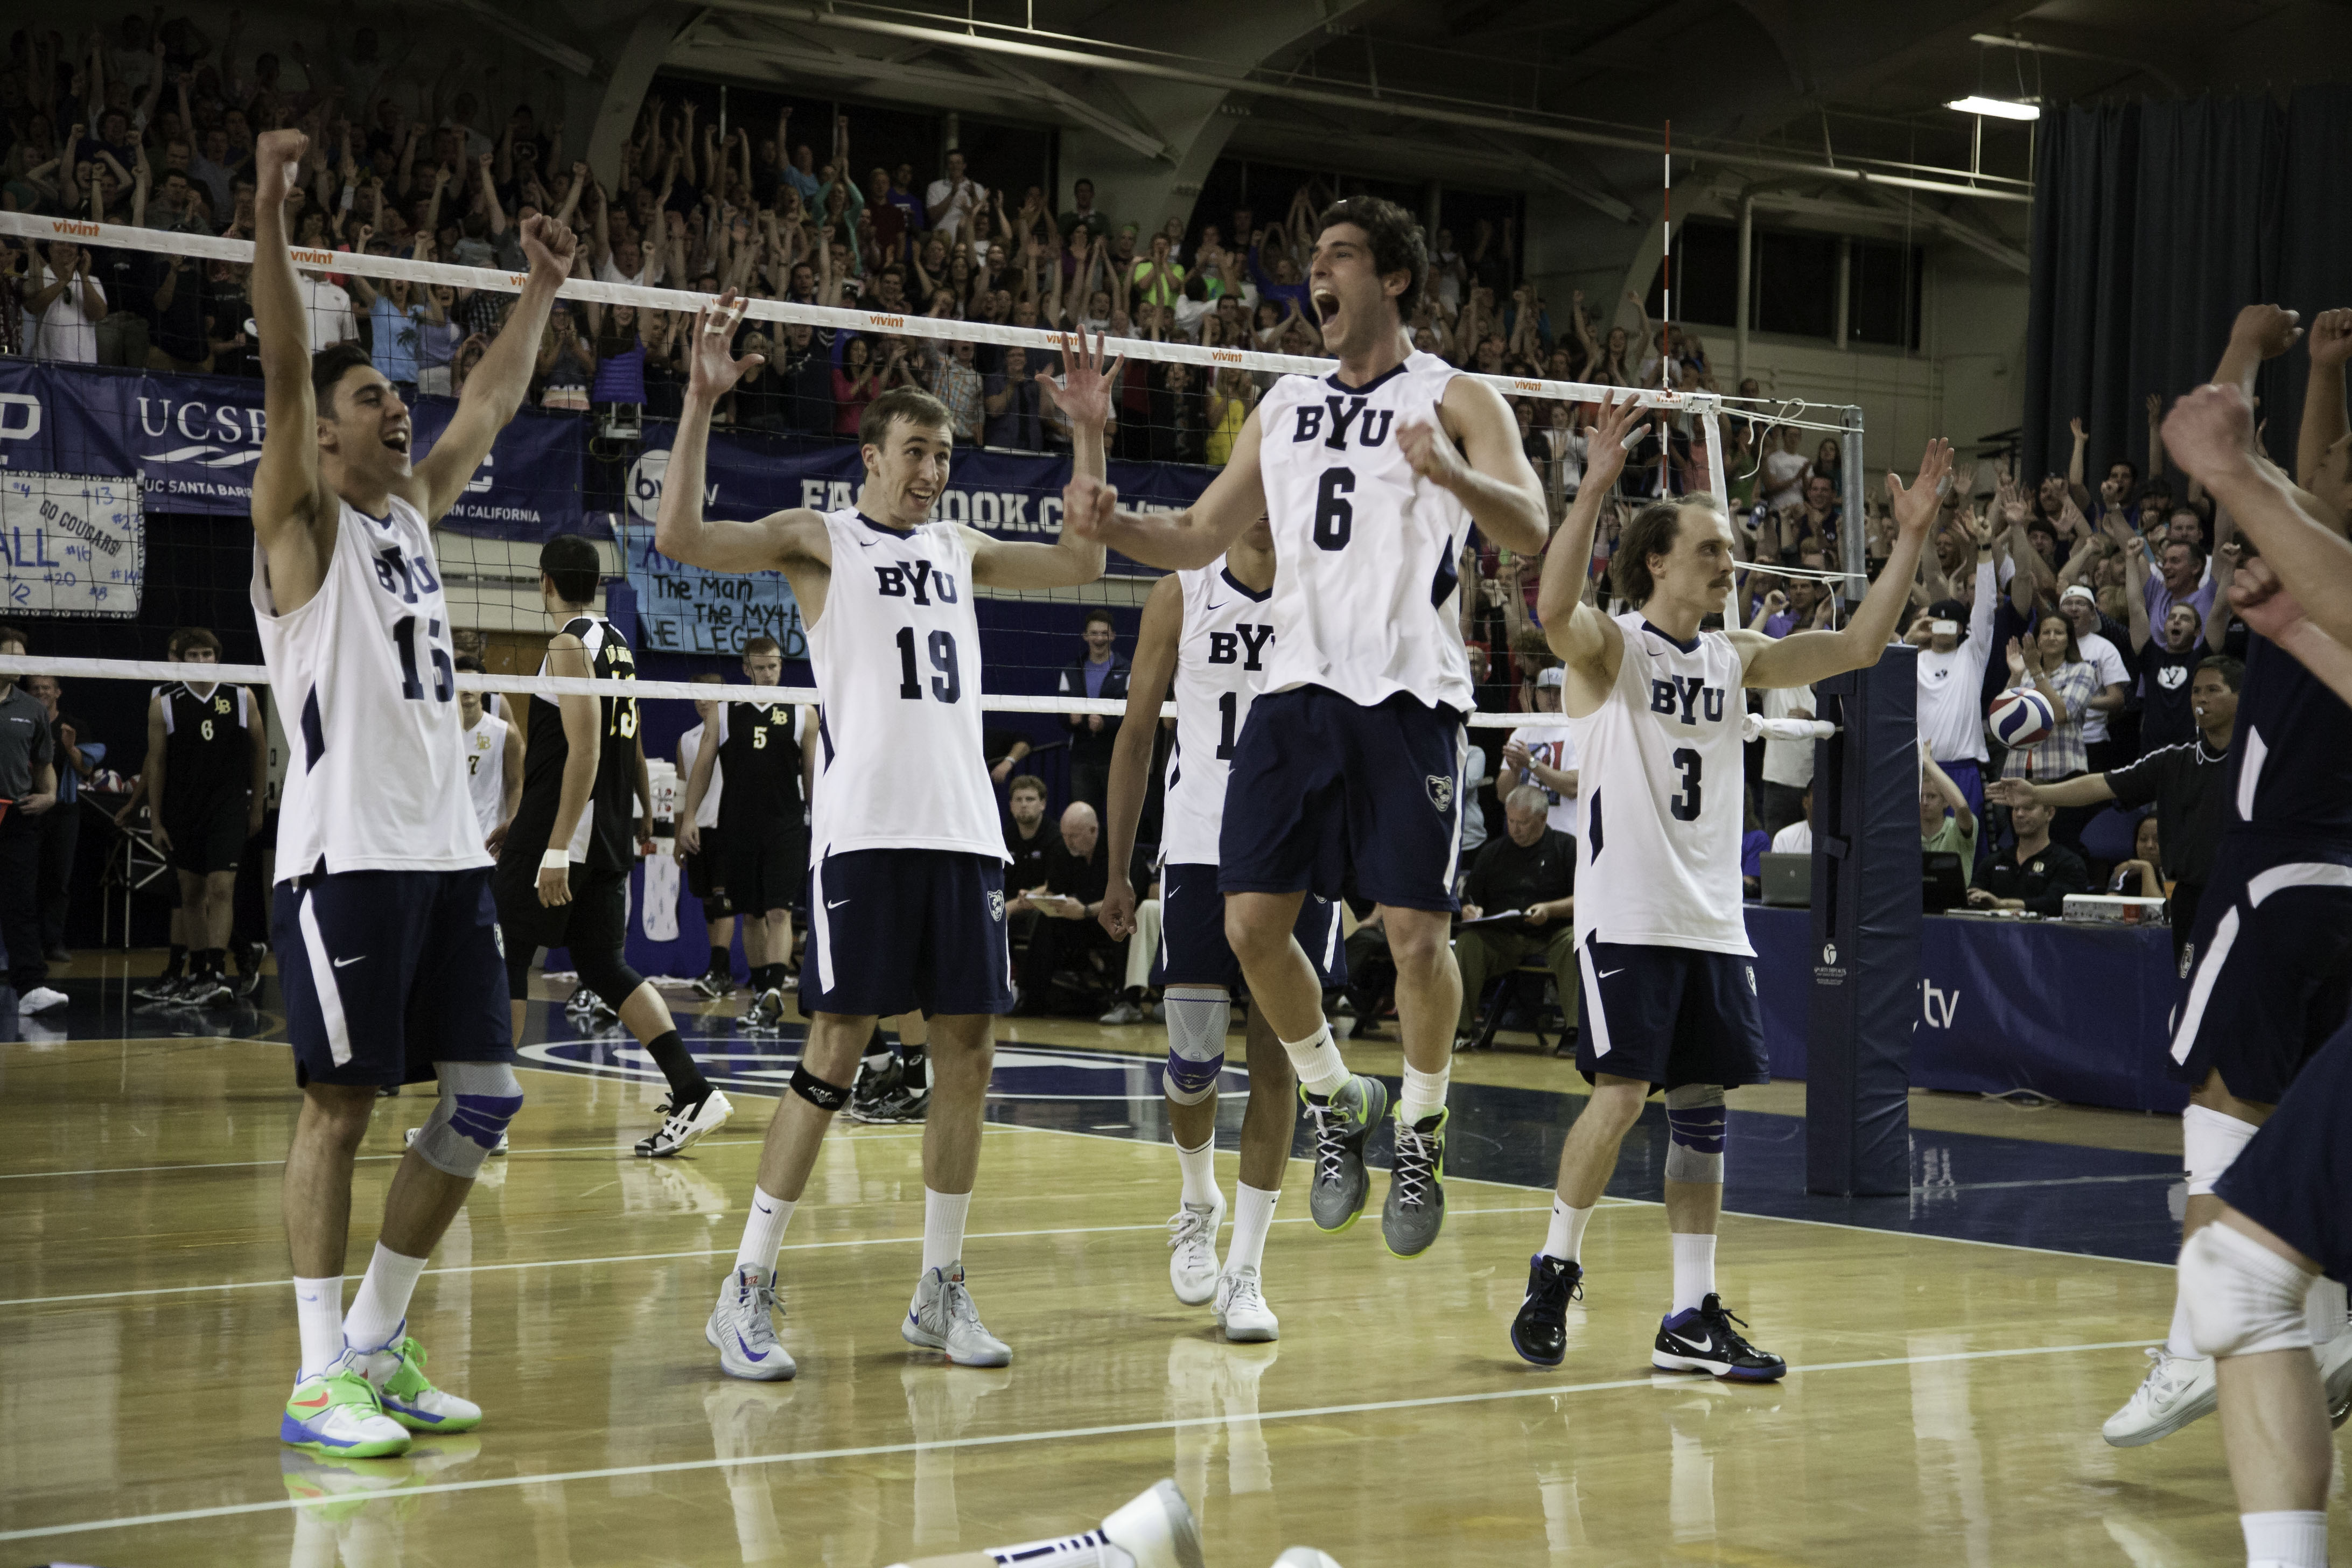 BYU players celebrate after winning the final point to clinch the 2013 MPSF Championship title. Photo by Elliott Miller.